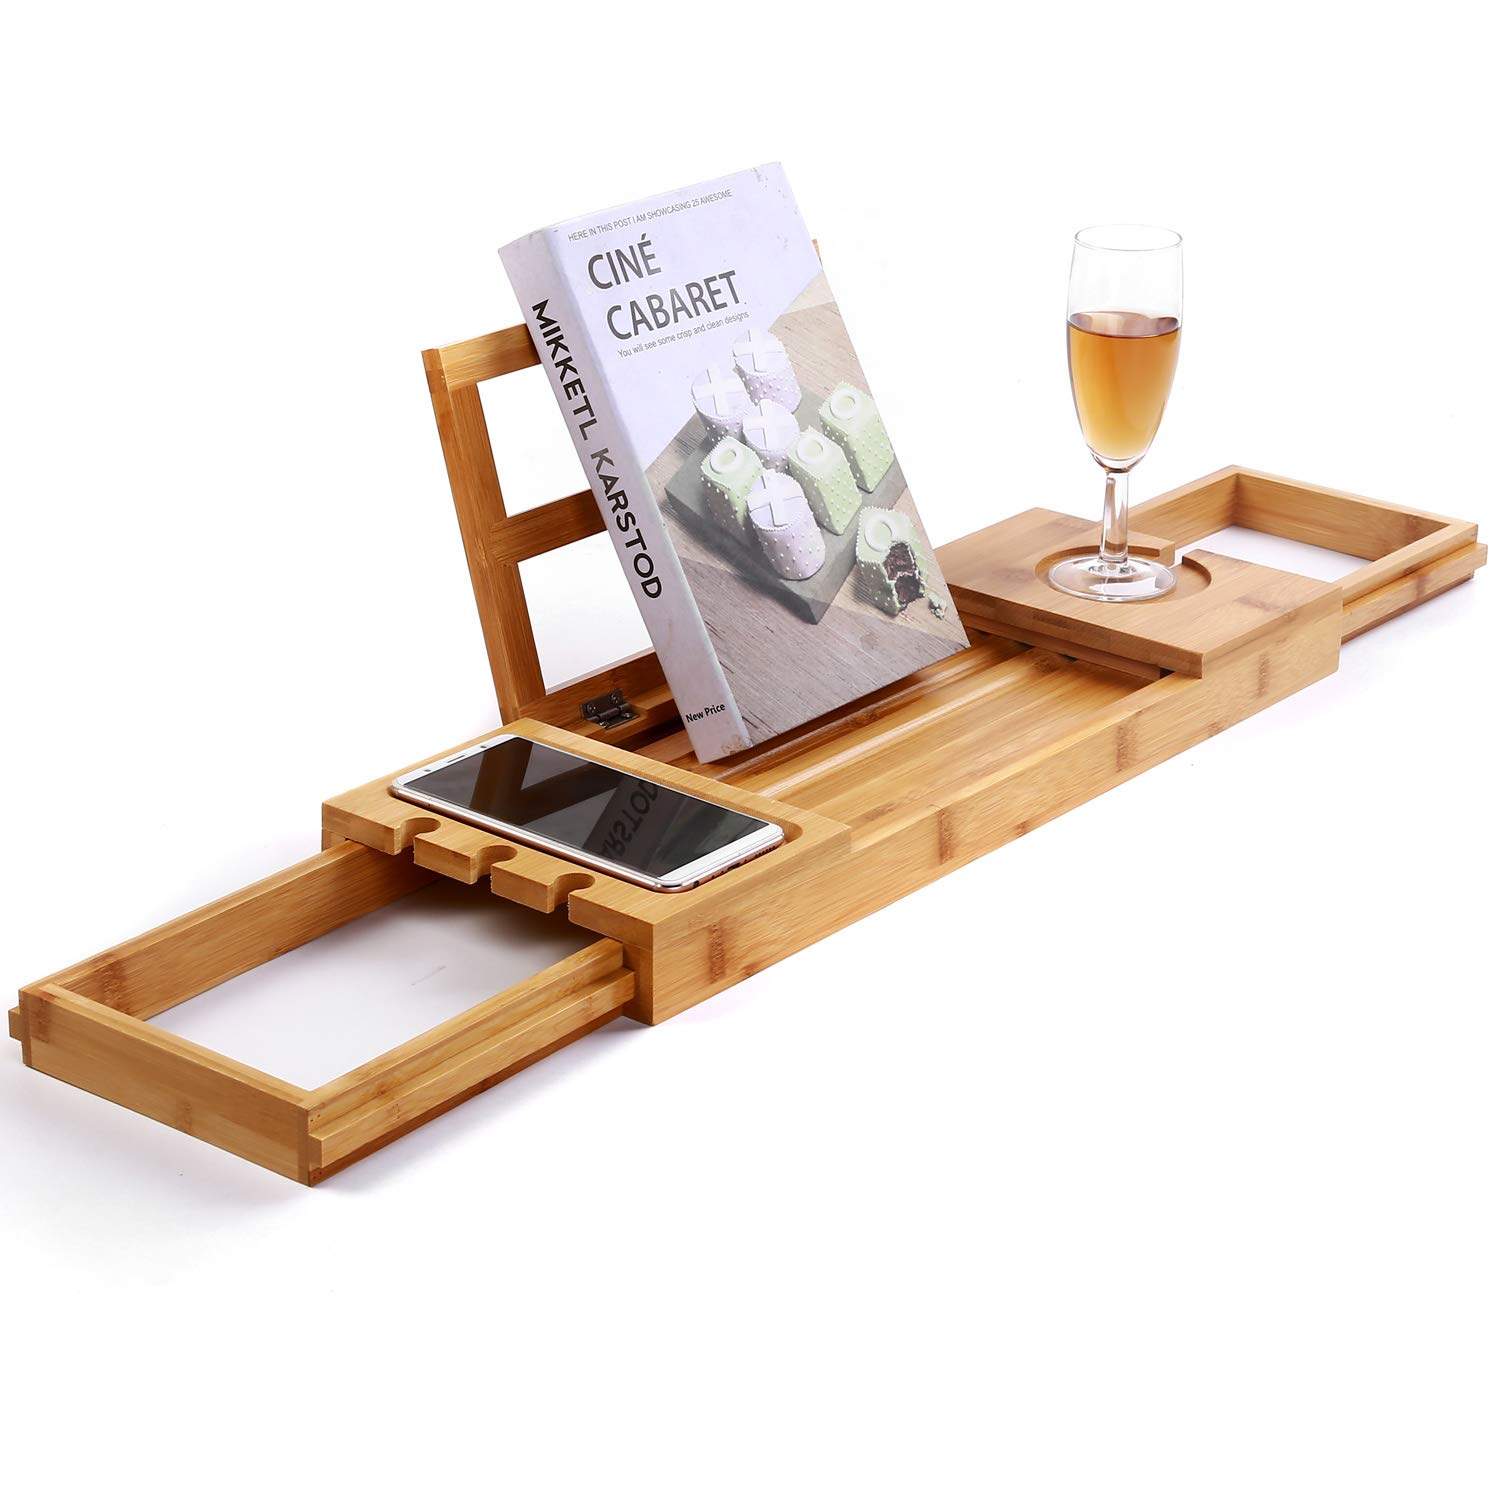 Utoplike Unique Bamboo Bathtub Tray Wooden Bath Caddy Tray with Extending Arms, Spa Relaxing Bath Organizer Tray Holds Books/Tablets/ Cell Phone/Towels/Foods SafeHouseware